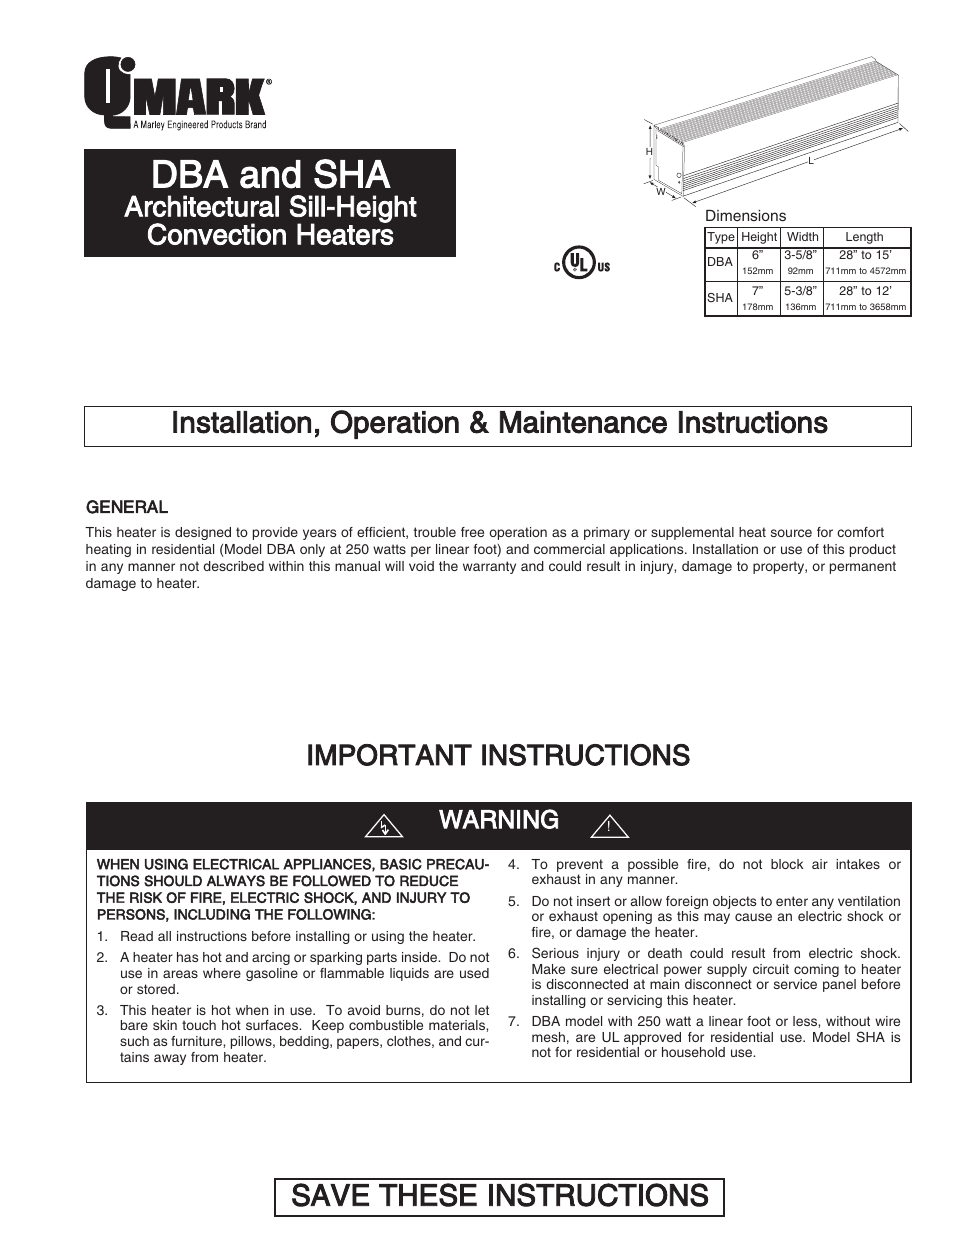 qmark dba architectural sill height convection heaters user manual rh manualsdir com O-Ring Installation Guide O-Ring Installation Guide